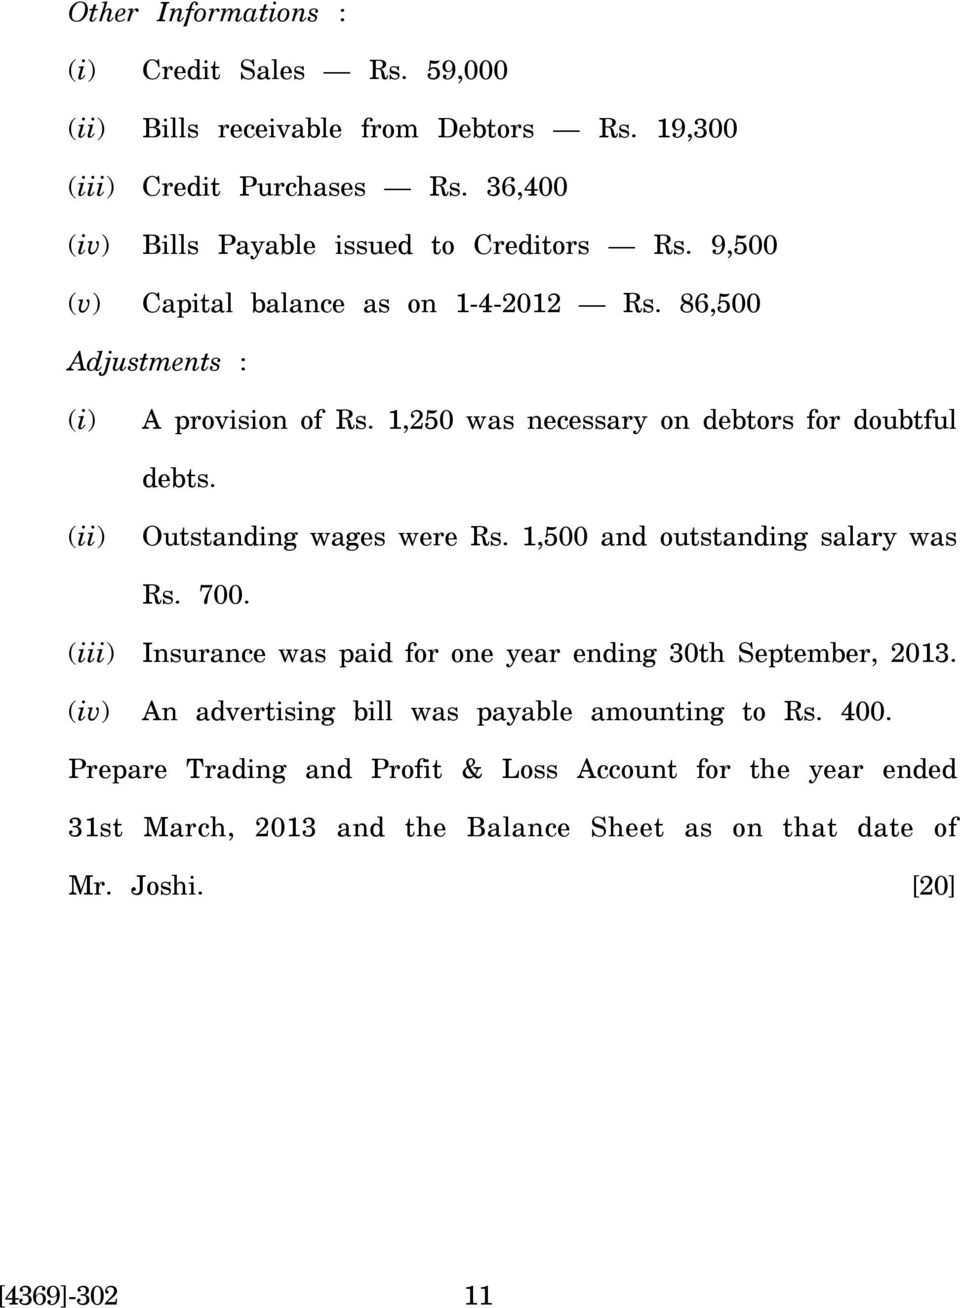 1,250 was necessary on debtors for doubtful debts. Outstanding wages were Rs. 1,500 and outstanding salary was Rs. 700.